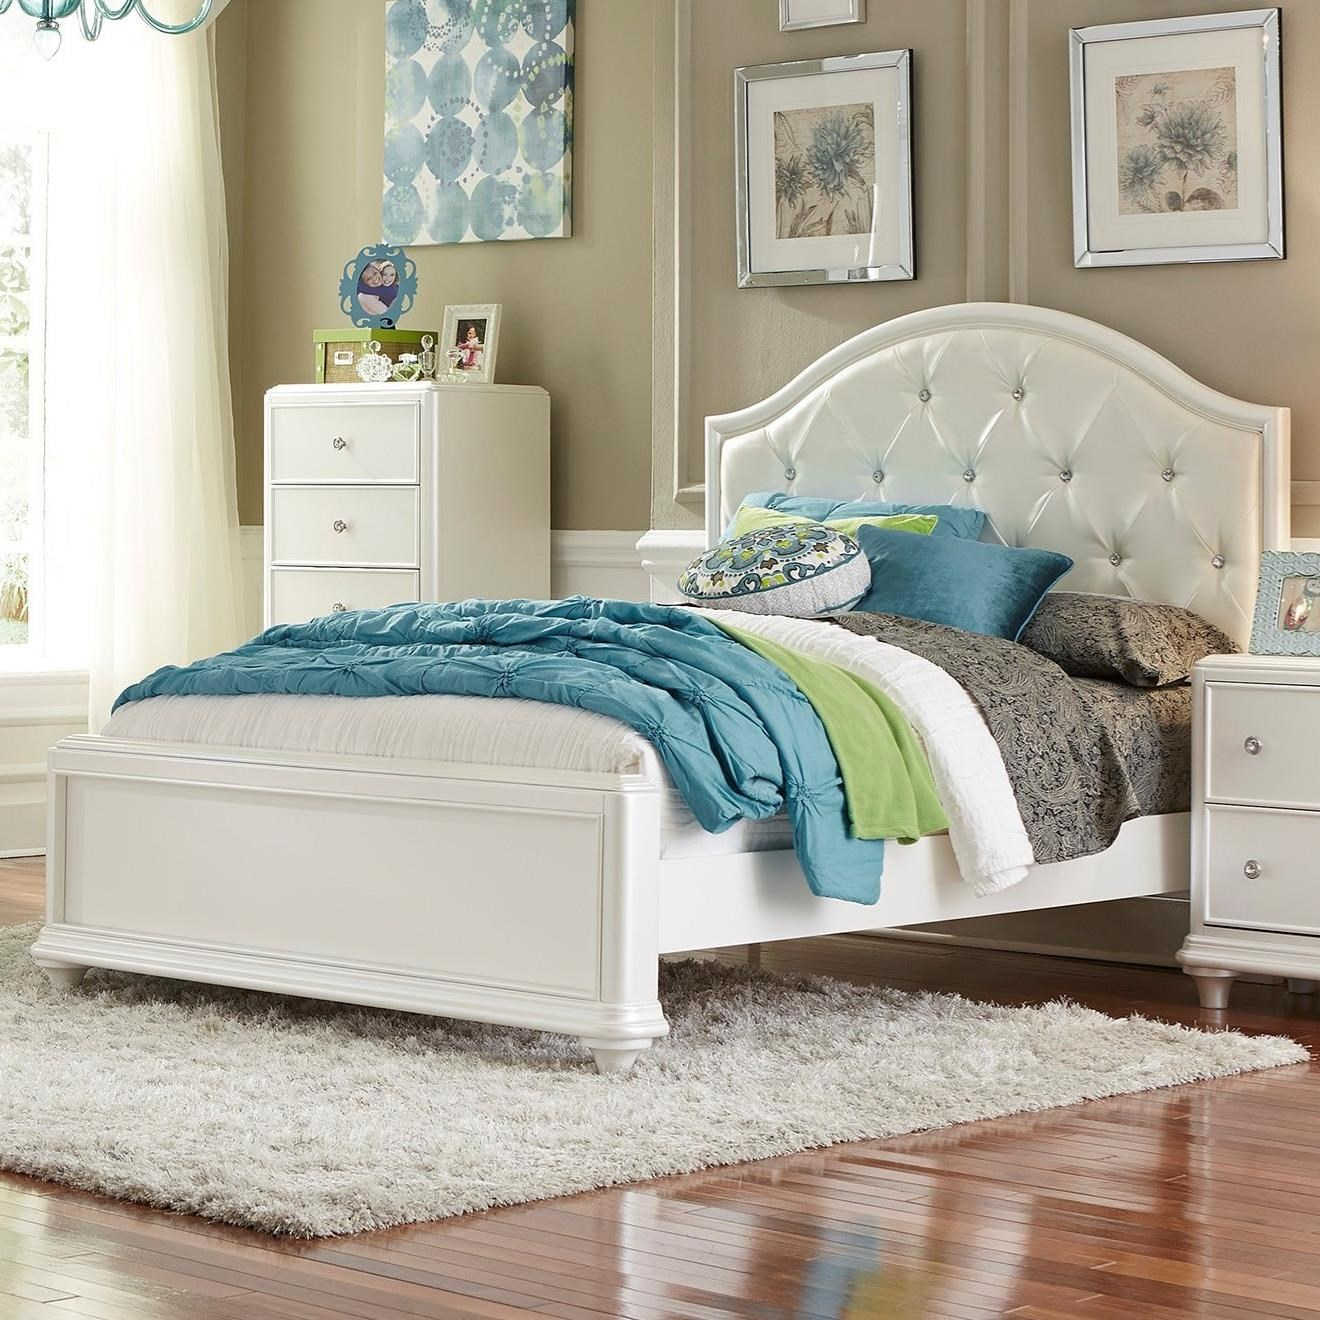 Liberty Furniture Stardust Full Panel Bed - Item Number: 710-YBR-FPB